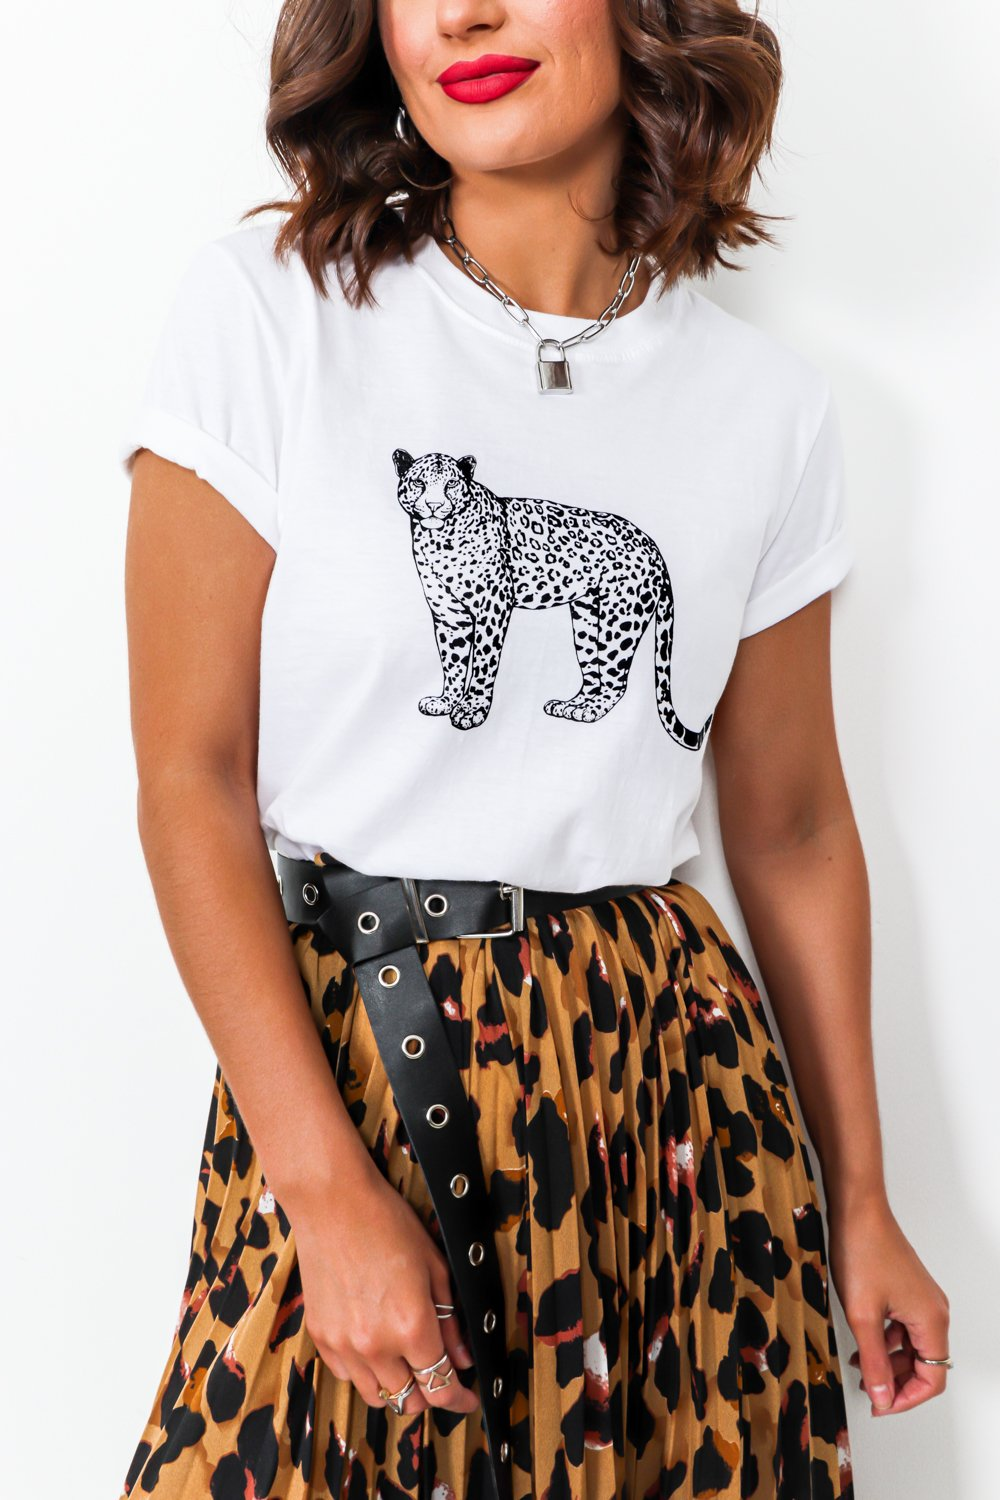 Queen Of The Jungle - Midi Skirt In LEOPARD